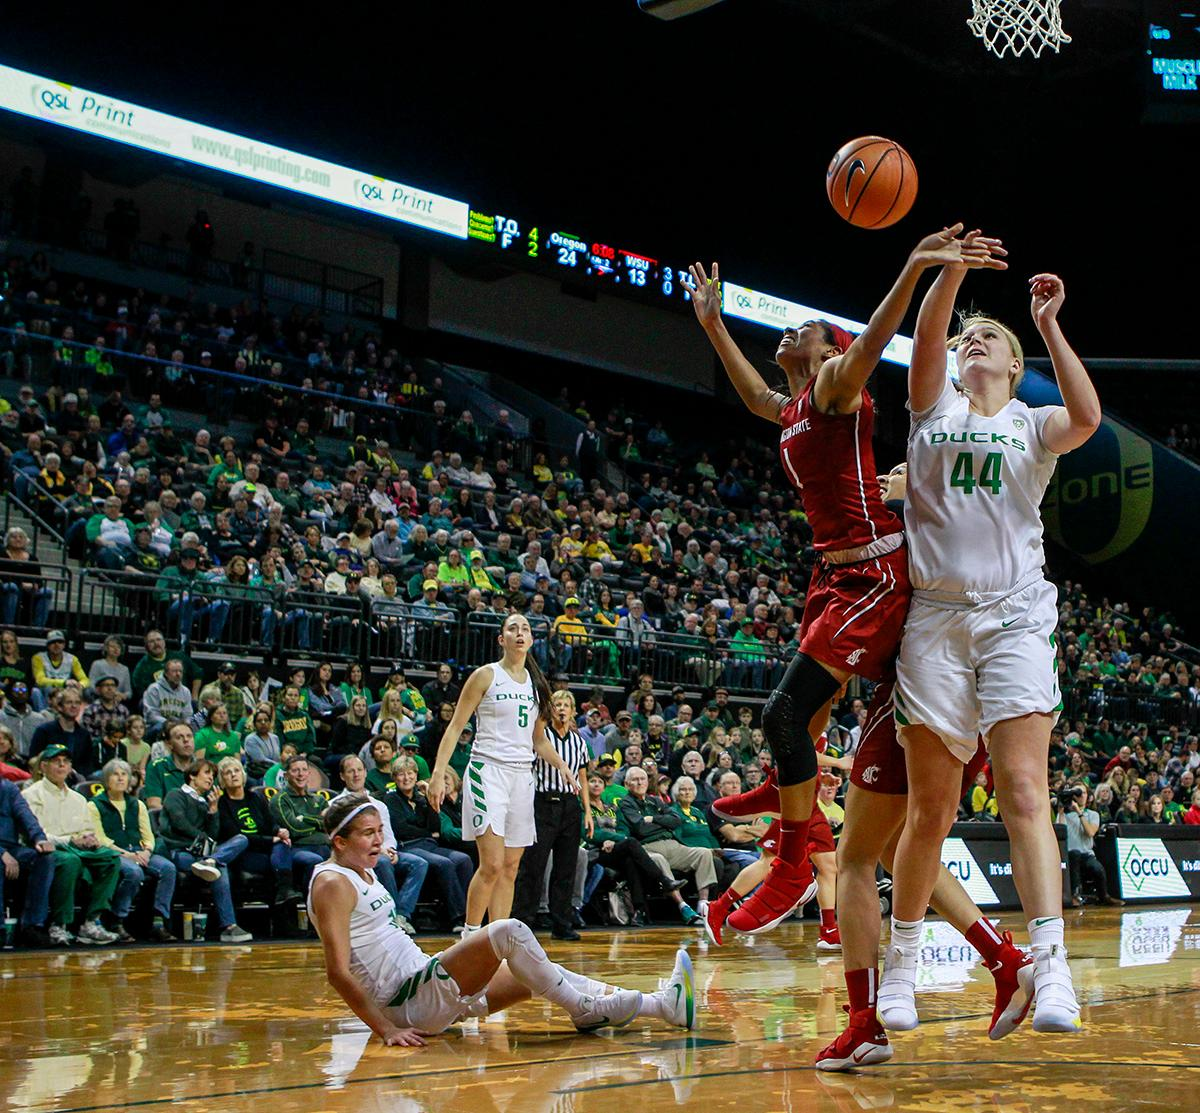 Washington State University Cougars Caila Hailey (#1) and Oregon Ducks Hallory McGwire (#44) fight for a rebound. In their first conference basketball game of the season, the Oregon Women Ducks defeated the Washington State Cougars 89-56 in Matt Knight Arena Saturday afternoon. Oregon's Ruthy Hebard ran up 25 points with 10 rebounds. Sabrina Ionescu shot 25 points with five three-pointers and three rebounds. Lexi Bando added 18 points, with four three-pointers and pulled down three rebounds. Satou Sabally ended the game with 14 points with one three-pointer and two rebounds. The Ducks are now 12-2 overall with 1-0 in conference and the Cougars stand at 7-6 overall and 0-1 in conference play. The Oregon Women Ducks next play the University of Washington Huskies at 1:00 pm on Sunday. Photo by Rhianna Gelhart, Oregon News Lab